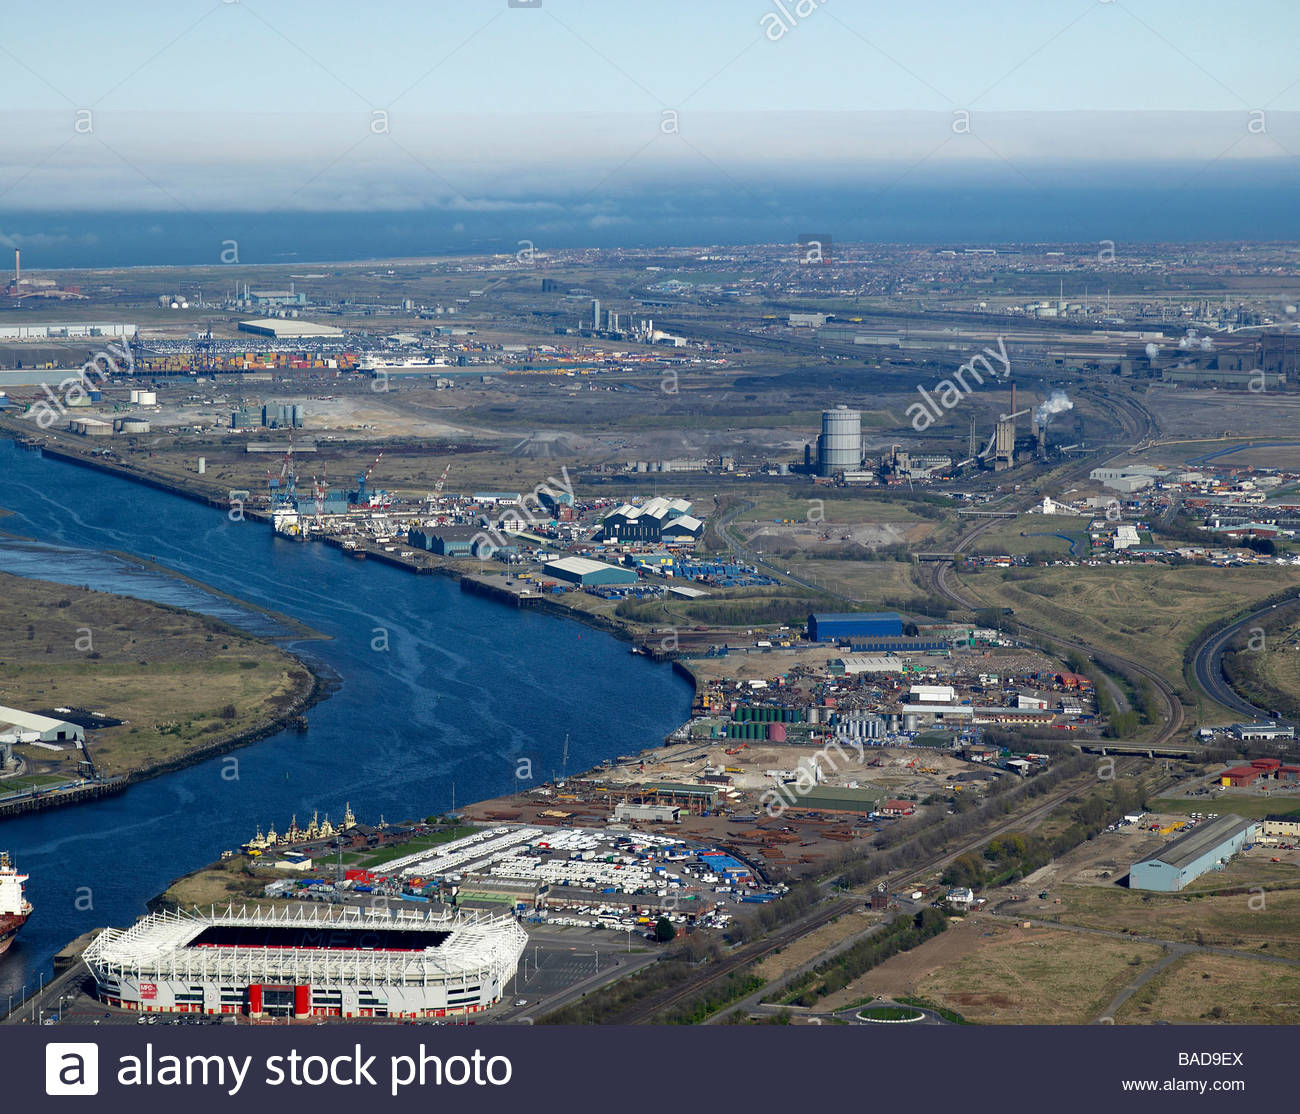 Middlesborough and the River Tees, North East England, showing the Riverside Stadium, and industry along the riverside - Stock Image